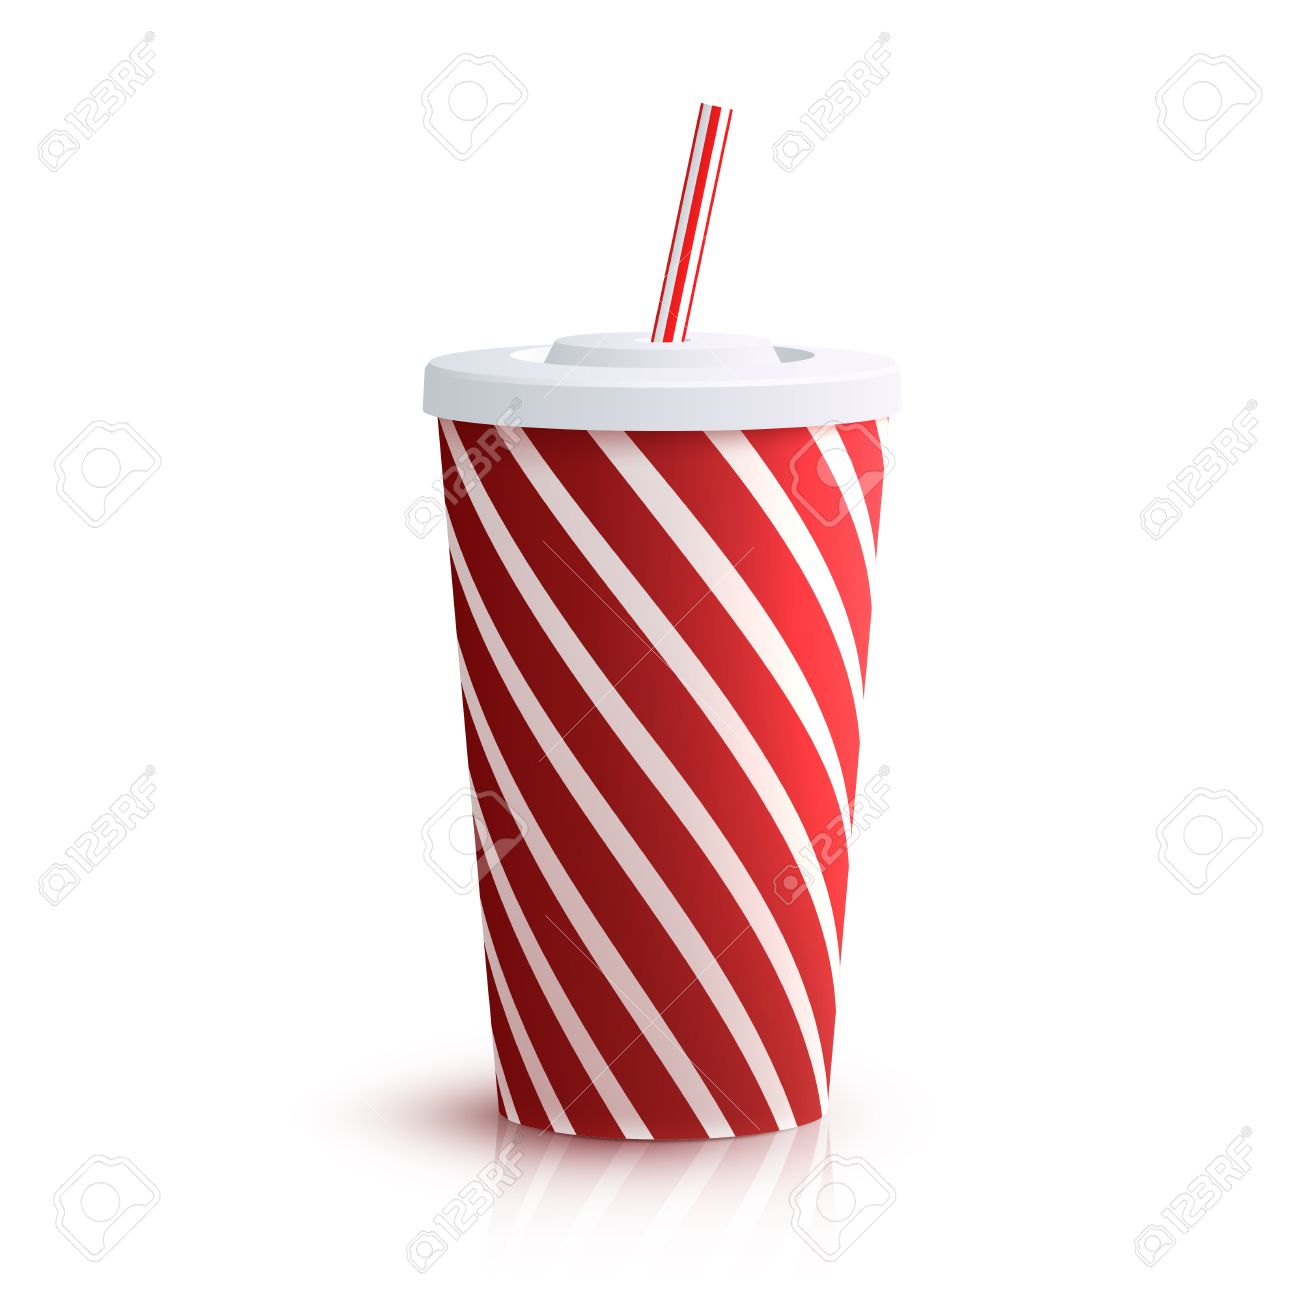 Red striped red striped paper glass with drinking straw isolated on white background vector illustration - 45805938